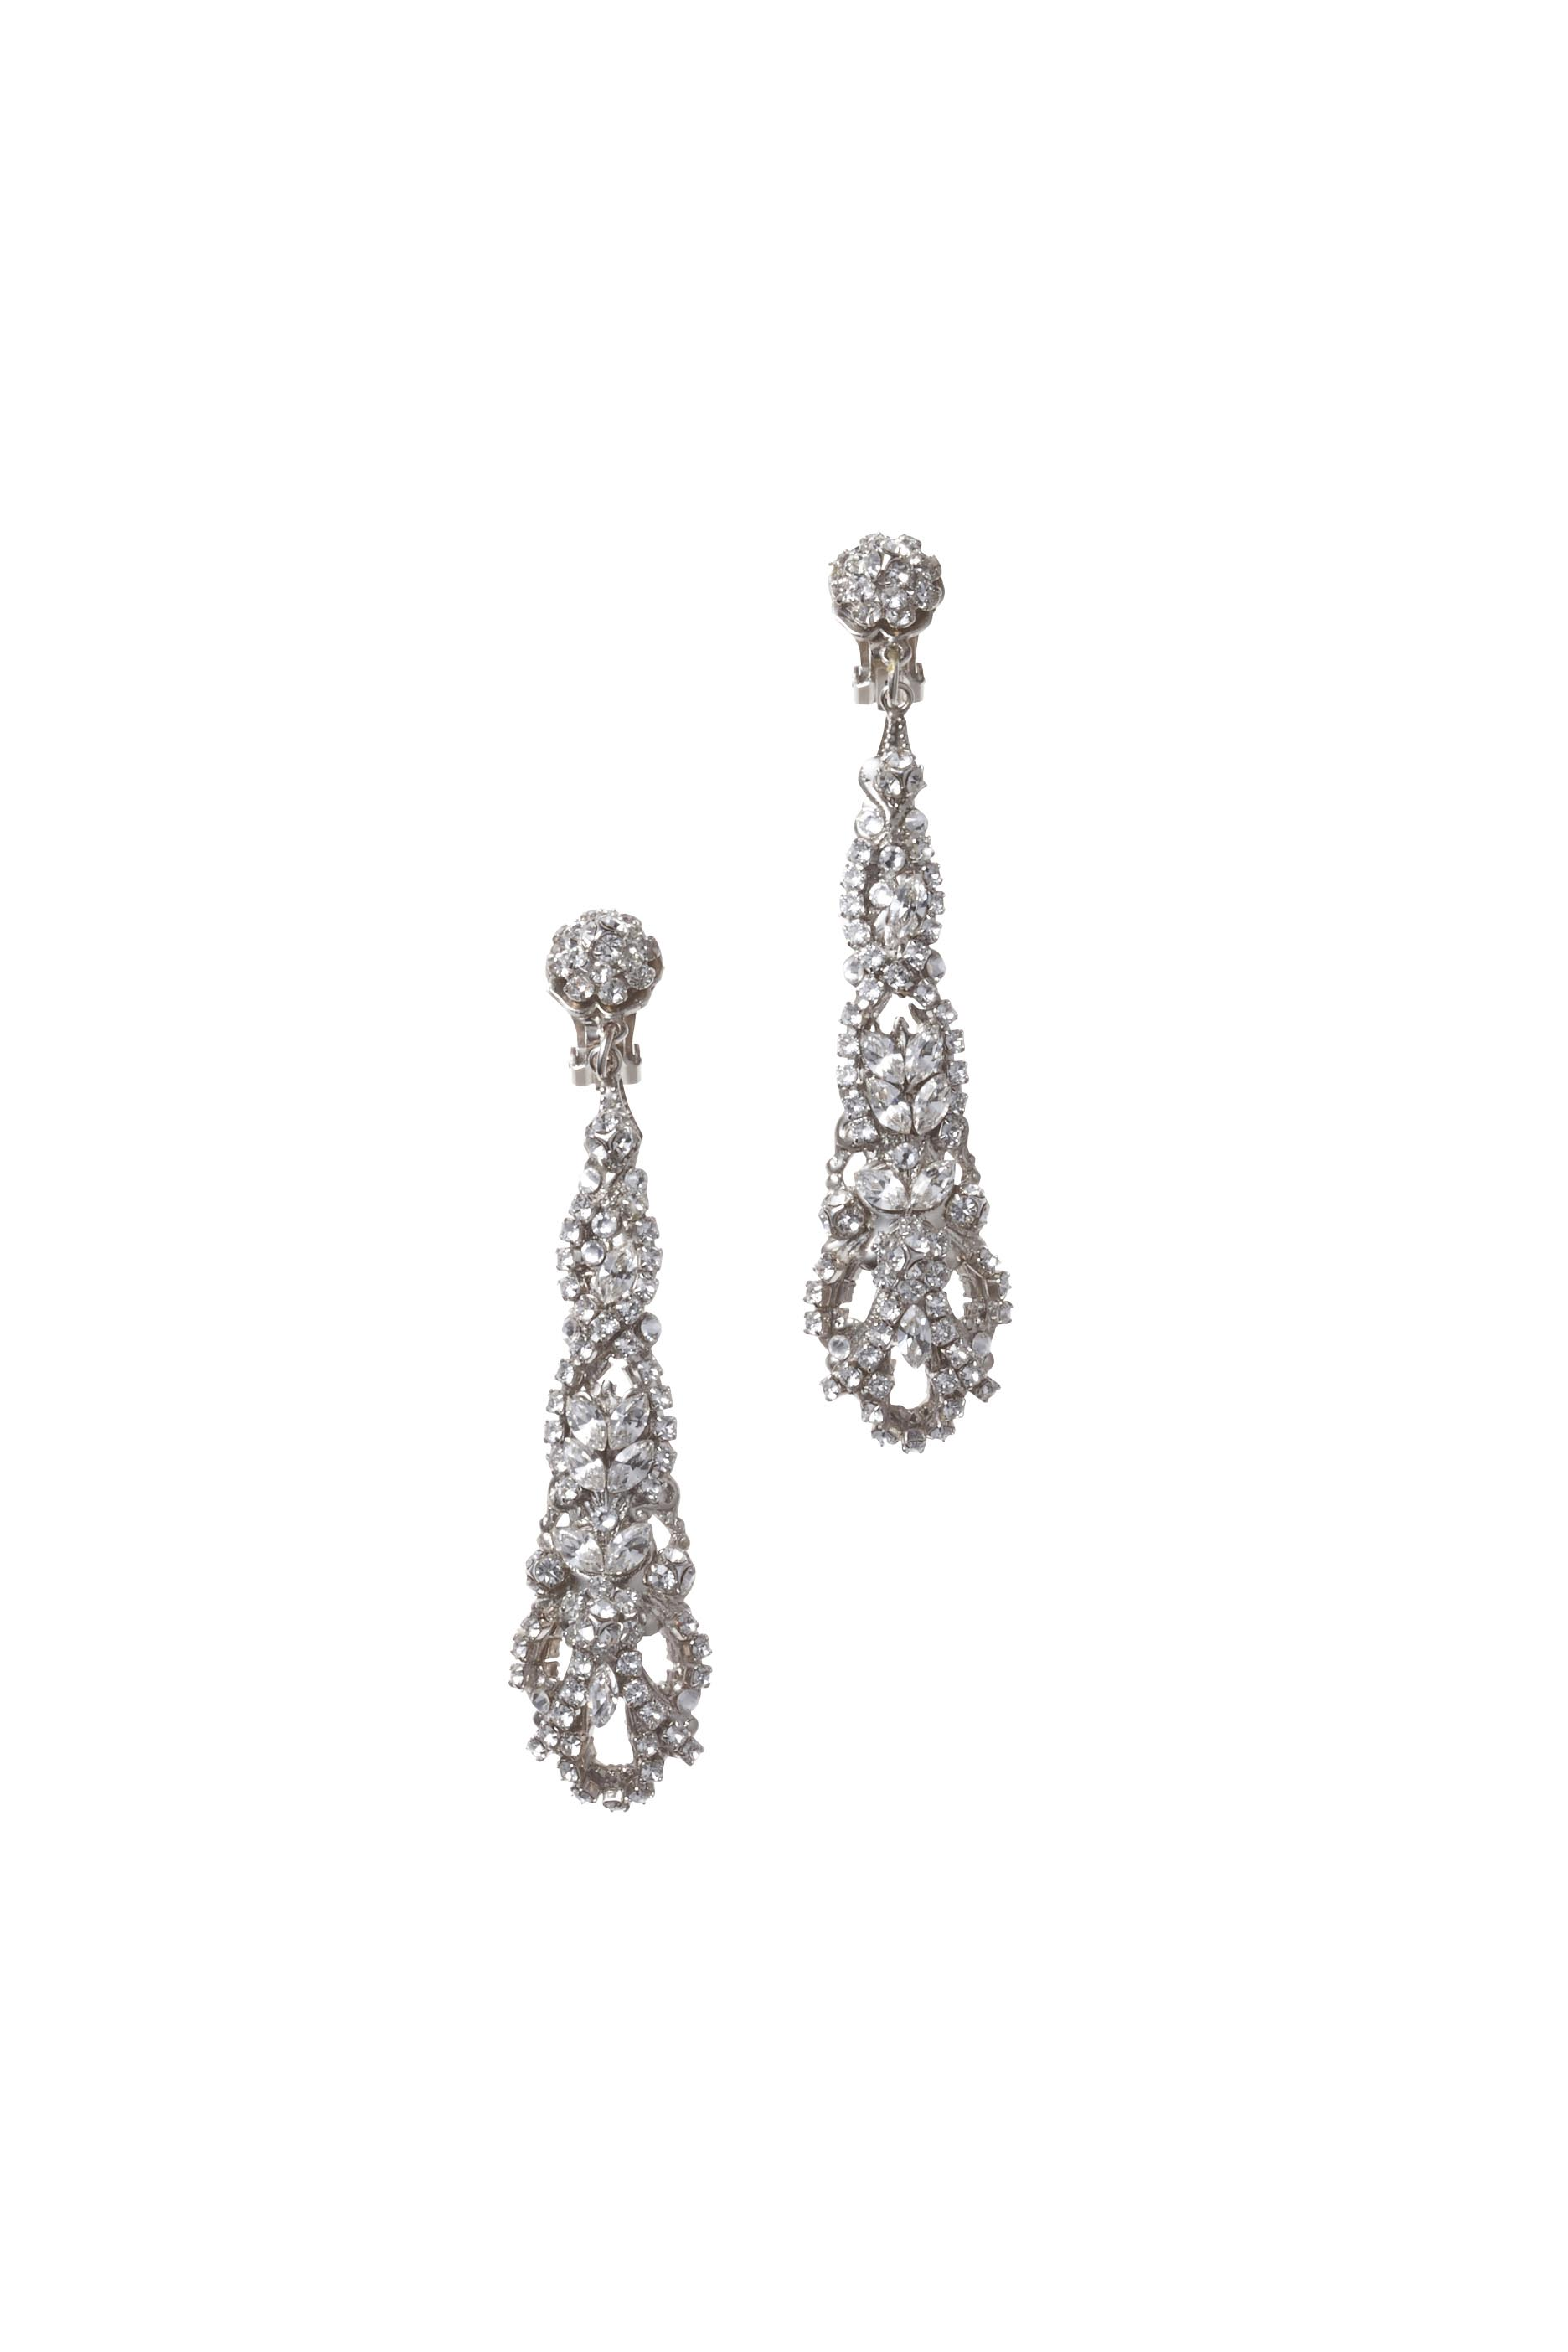 [RENTAL][Valentino Earrings]by MariaElena